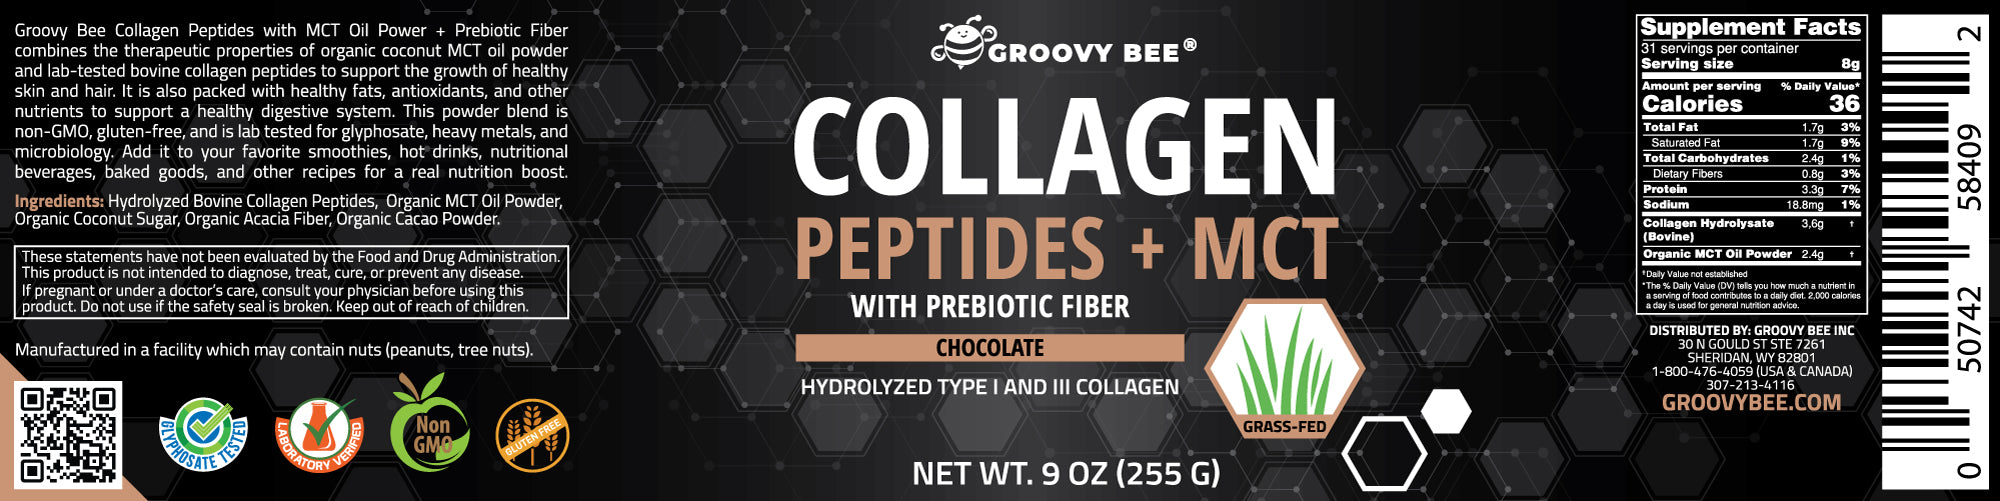 Groovy Bee® Collagen Peptides + MCT with Prebiotic Fiber - Chocolate 9 oz (255g) (6-Pack)